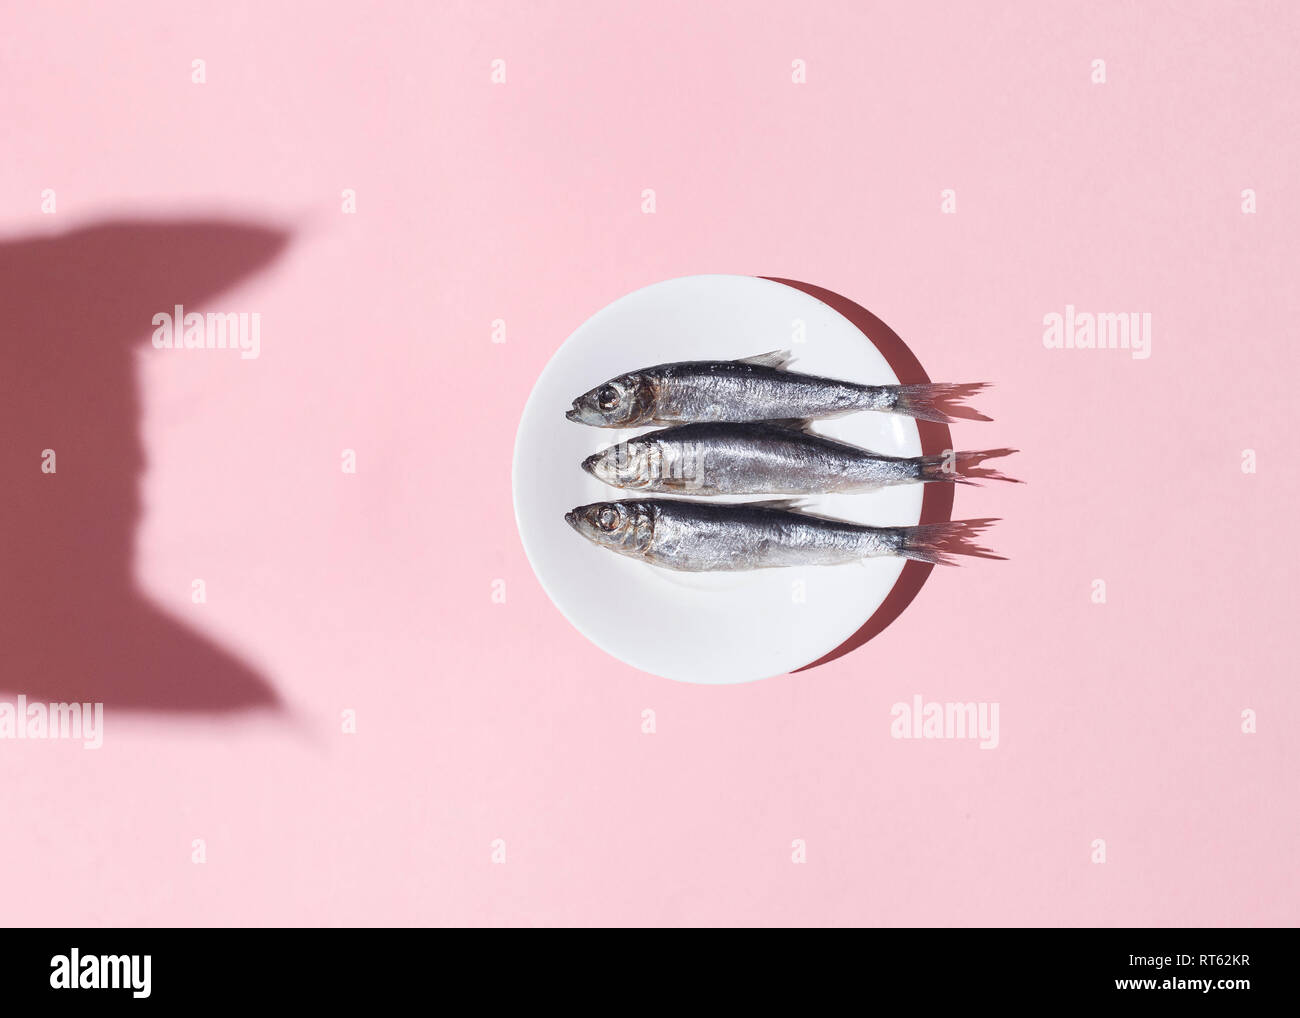 Cat vs fish. Curious cat shadow and plate with silver fish on pink background. Hard light. Top view. Flat lay. Curiousity and food concept. - Stock Image